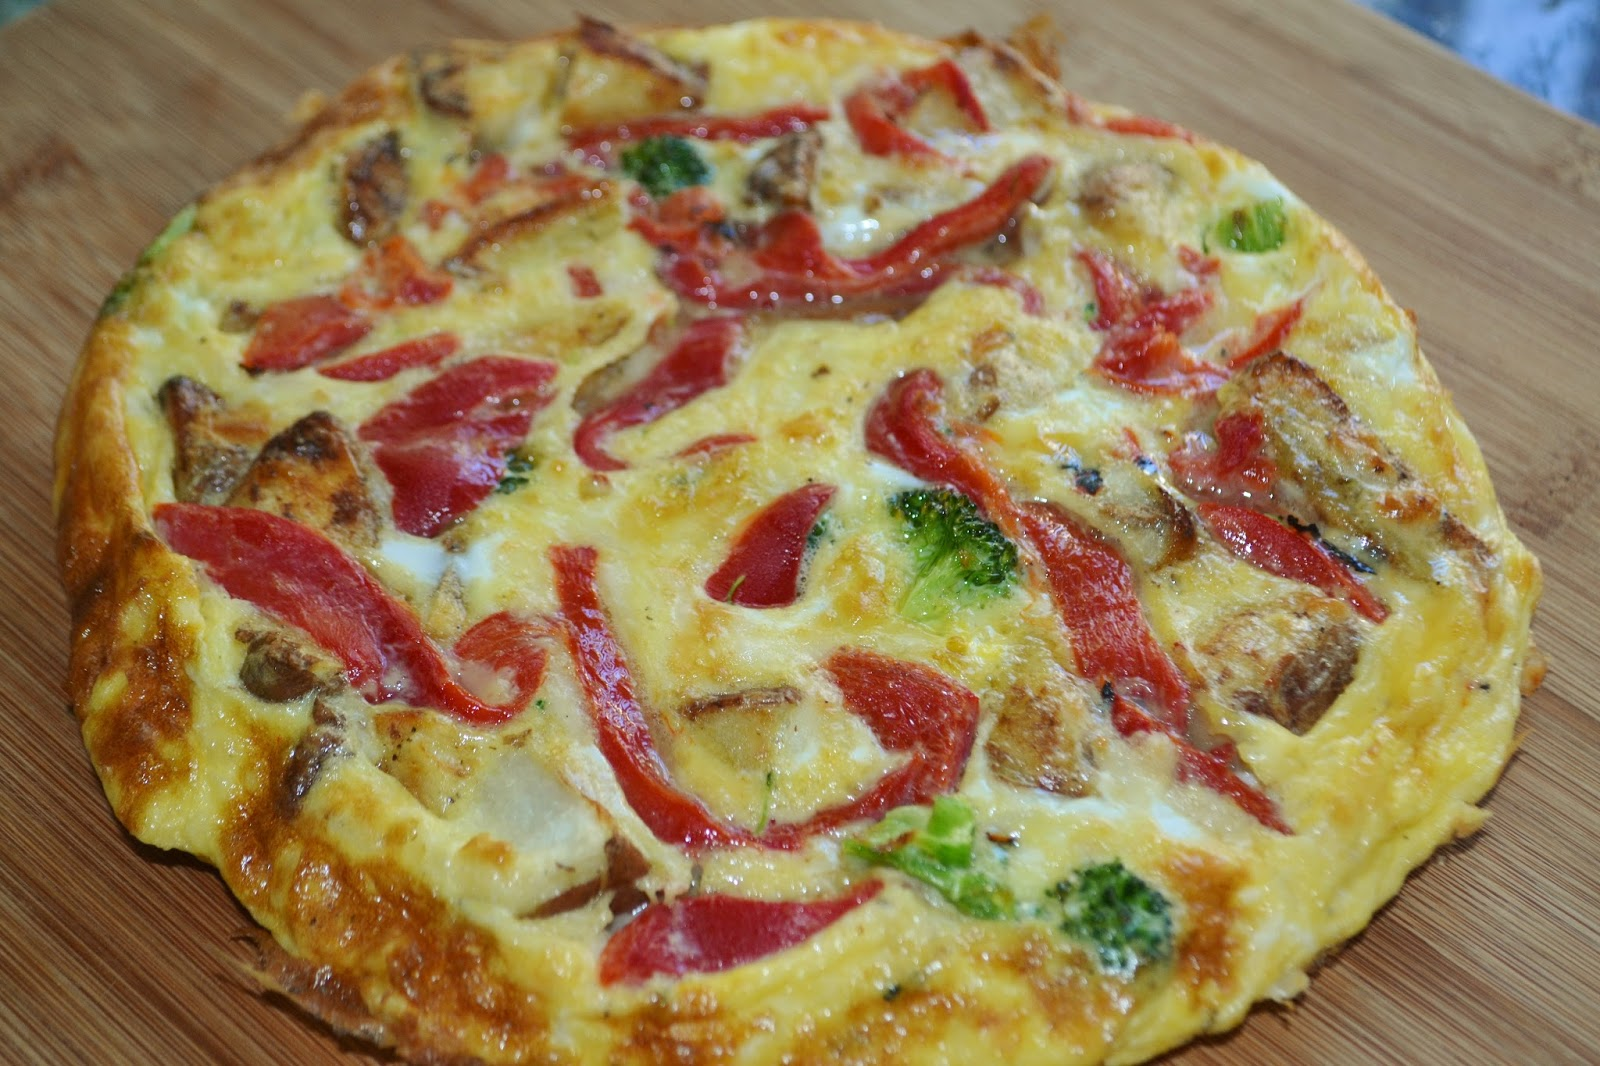 ... Bell Pepper, Red Potato, Broccoli and Provolone Frittata for Two